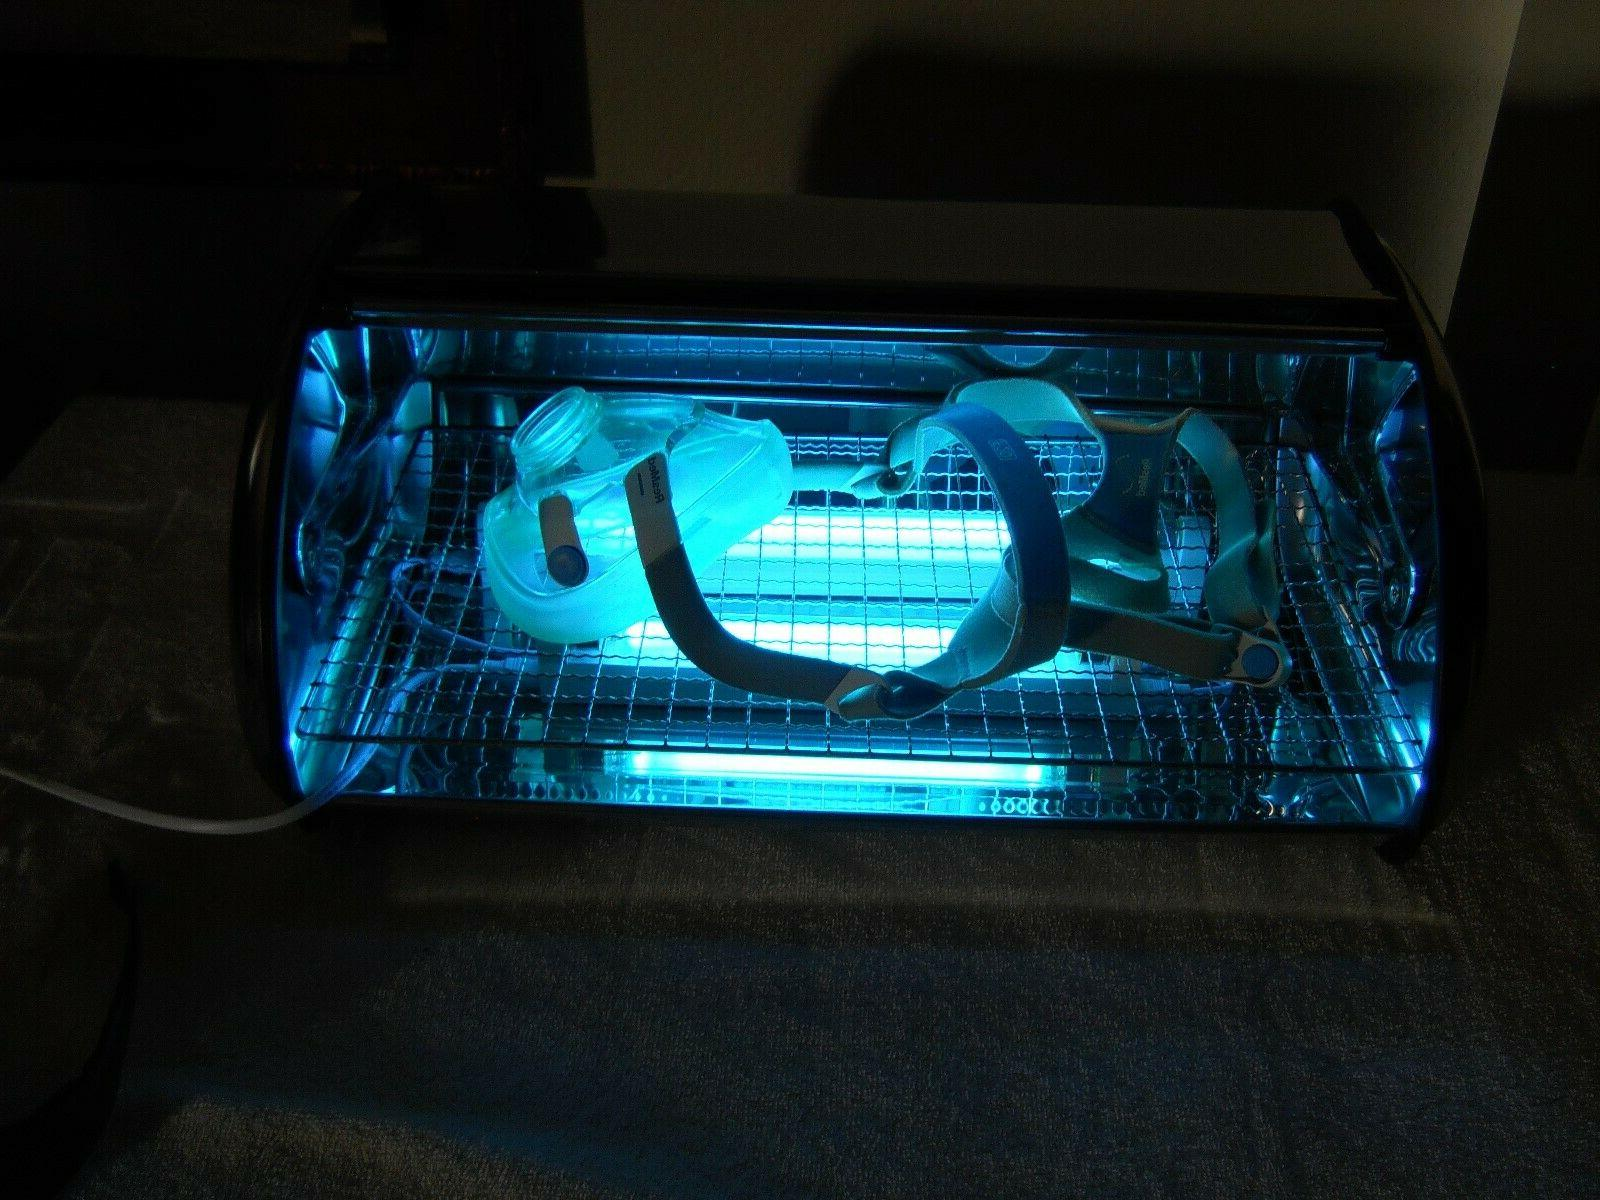 C Before a SoClean®, Ozone Cpap Read This